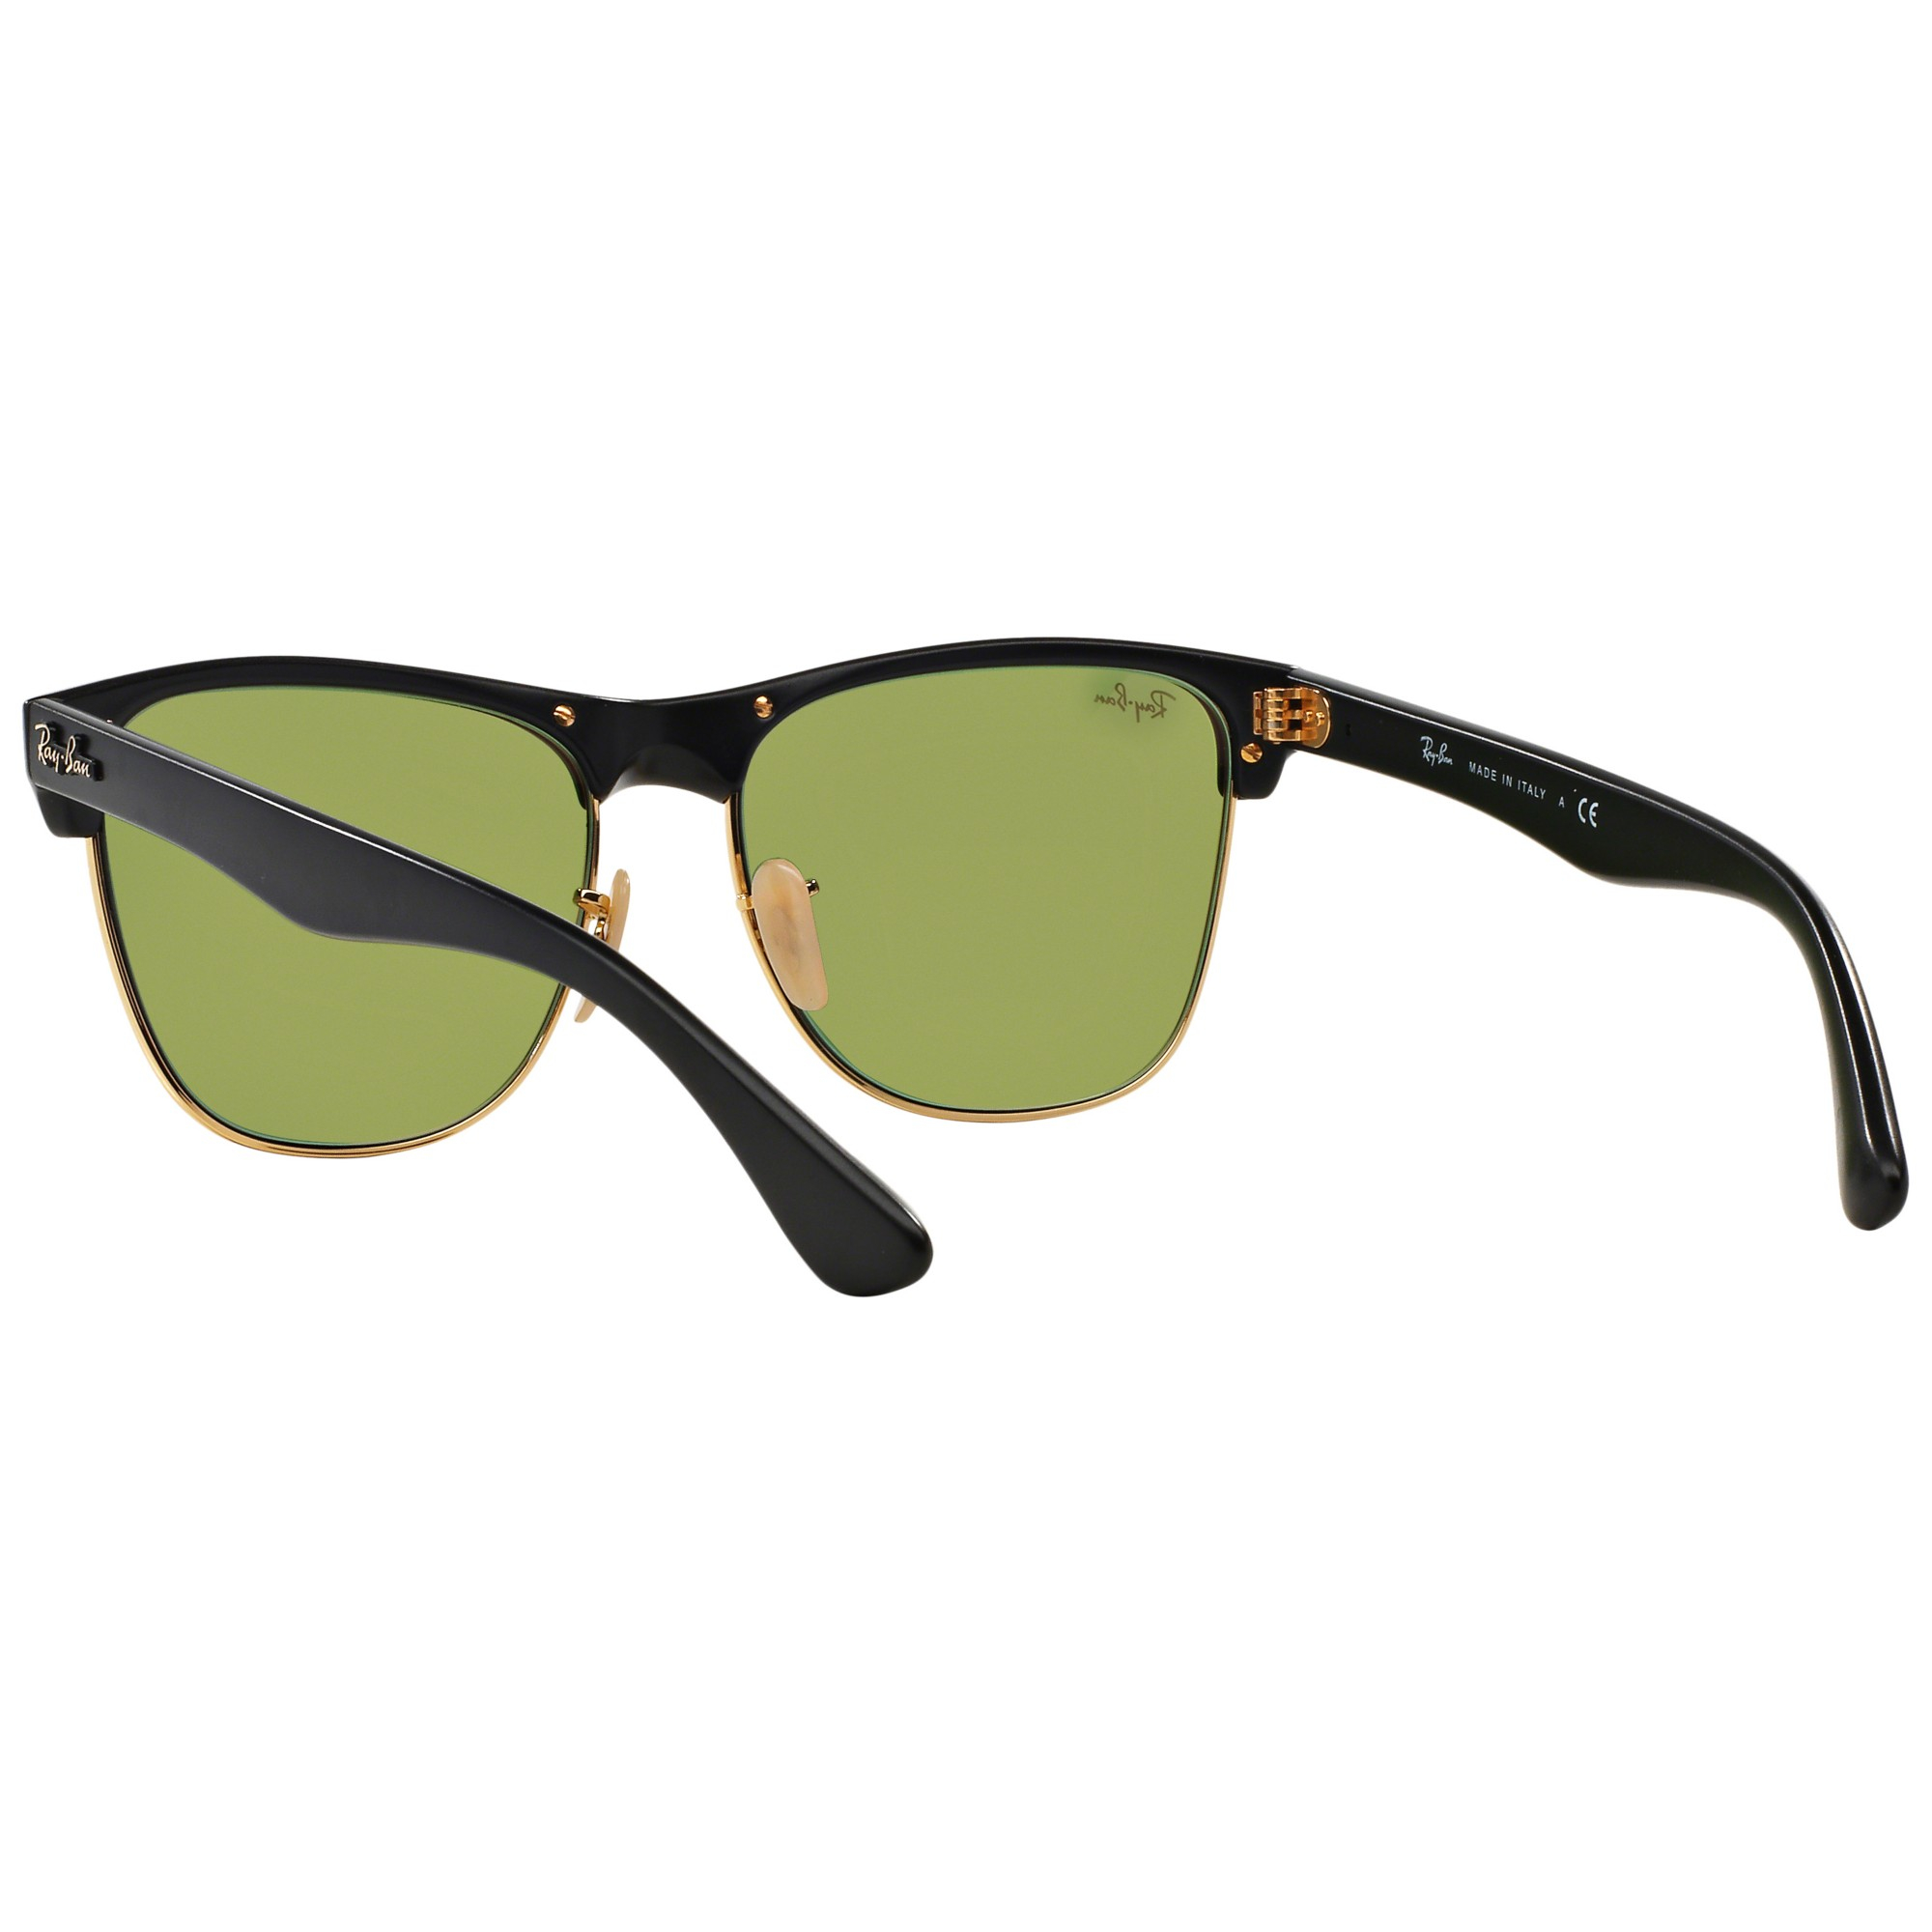 3d62b10942 Ray-Ban Rb4175 Clubmaster Oversized Sunglasses in Black - Lyst